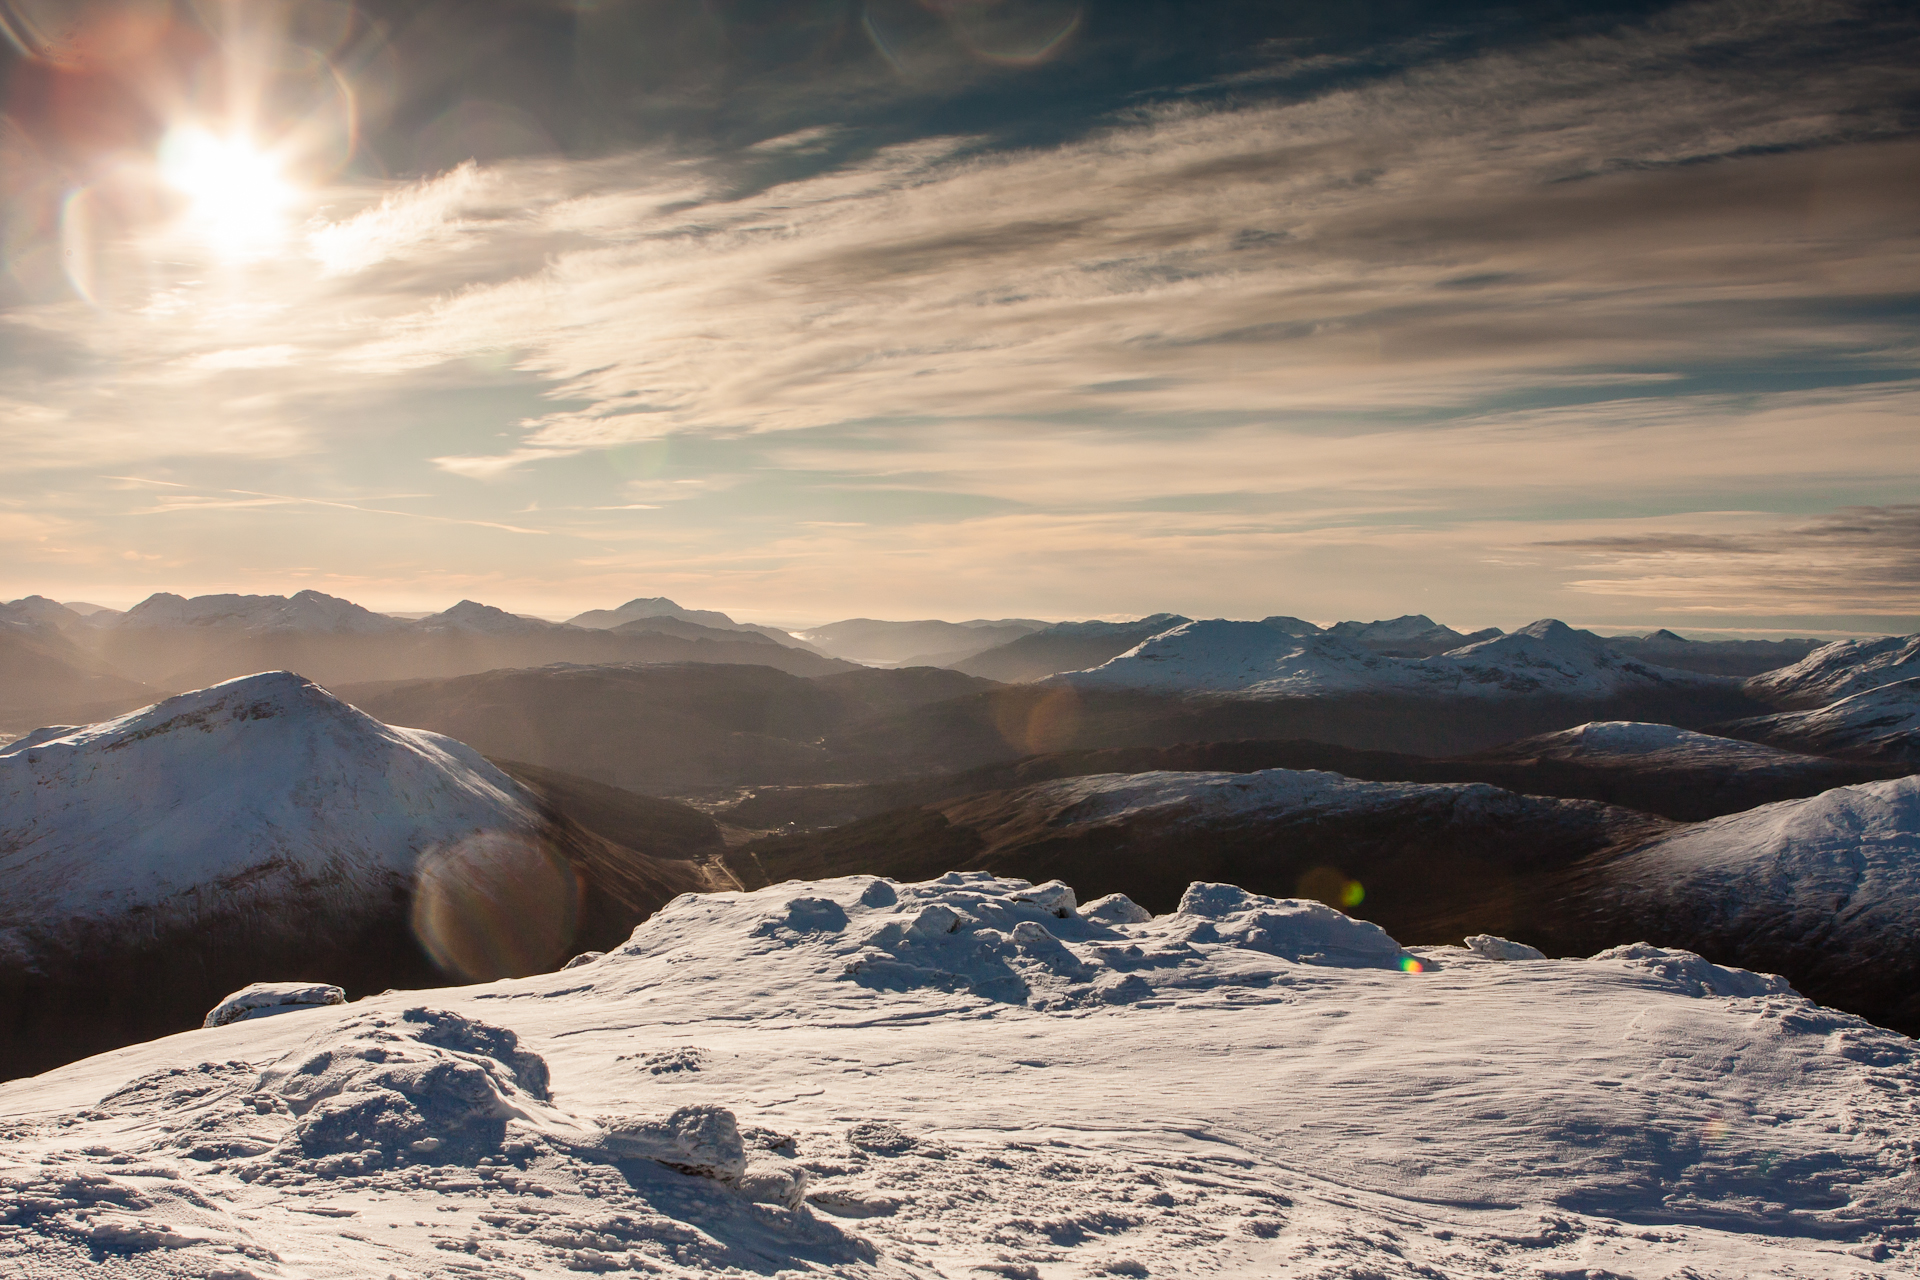 Looking south from Beinn Dorain on a glorious winter morning. An amazing sight to behold - but lens flared to buggery and beyond.